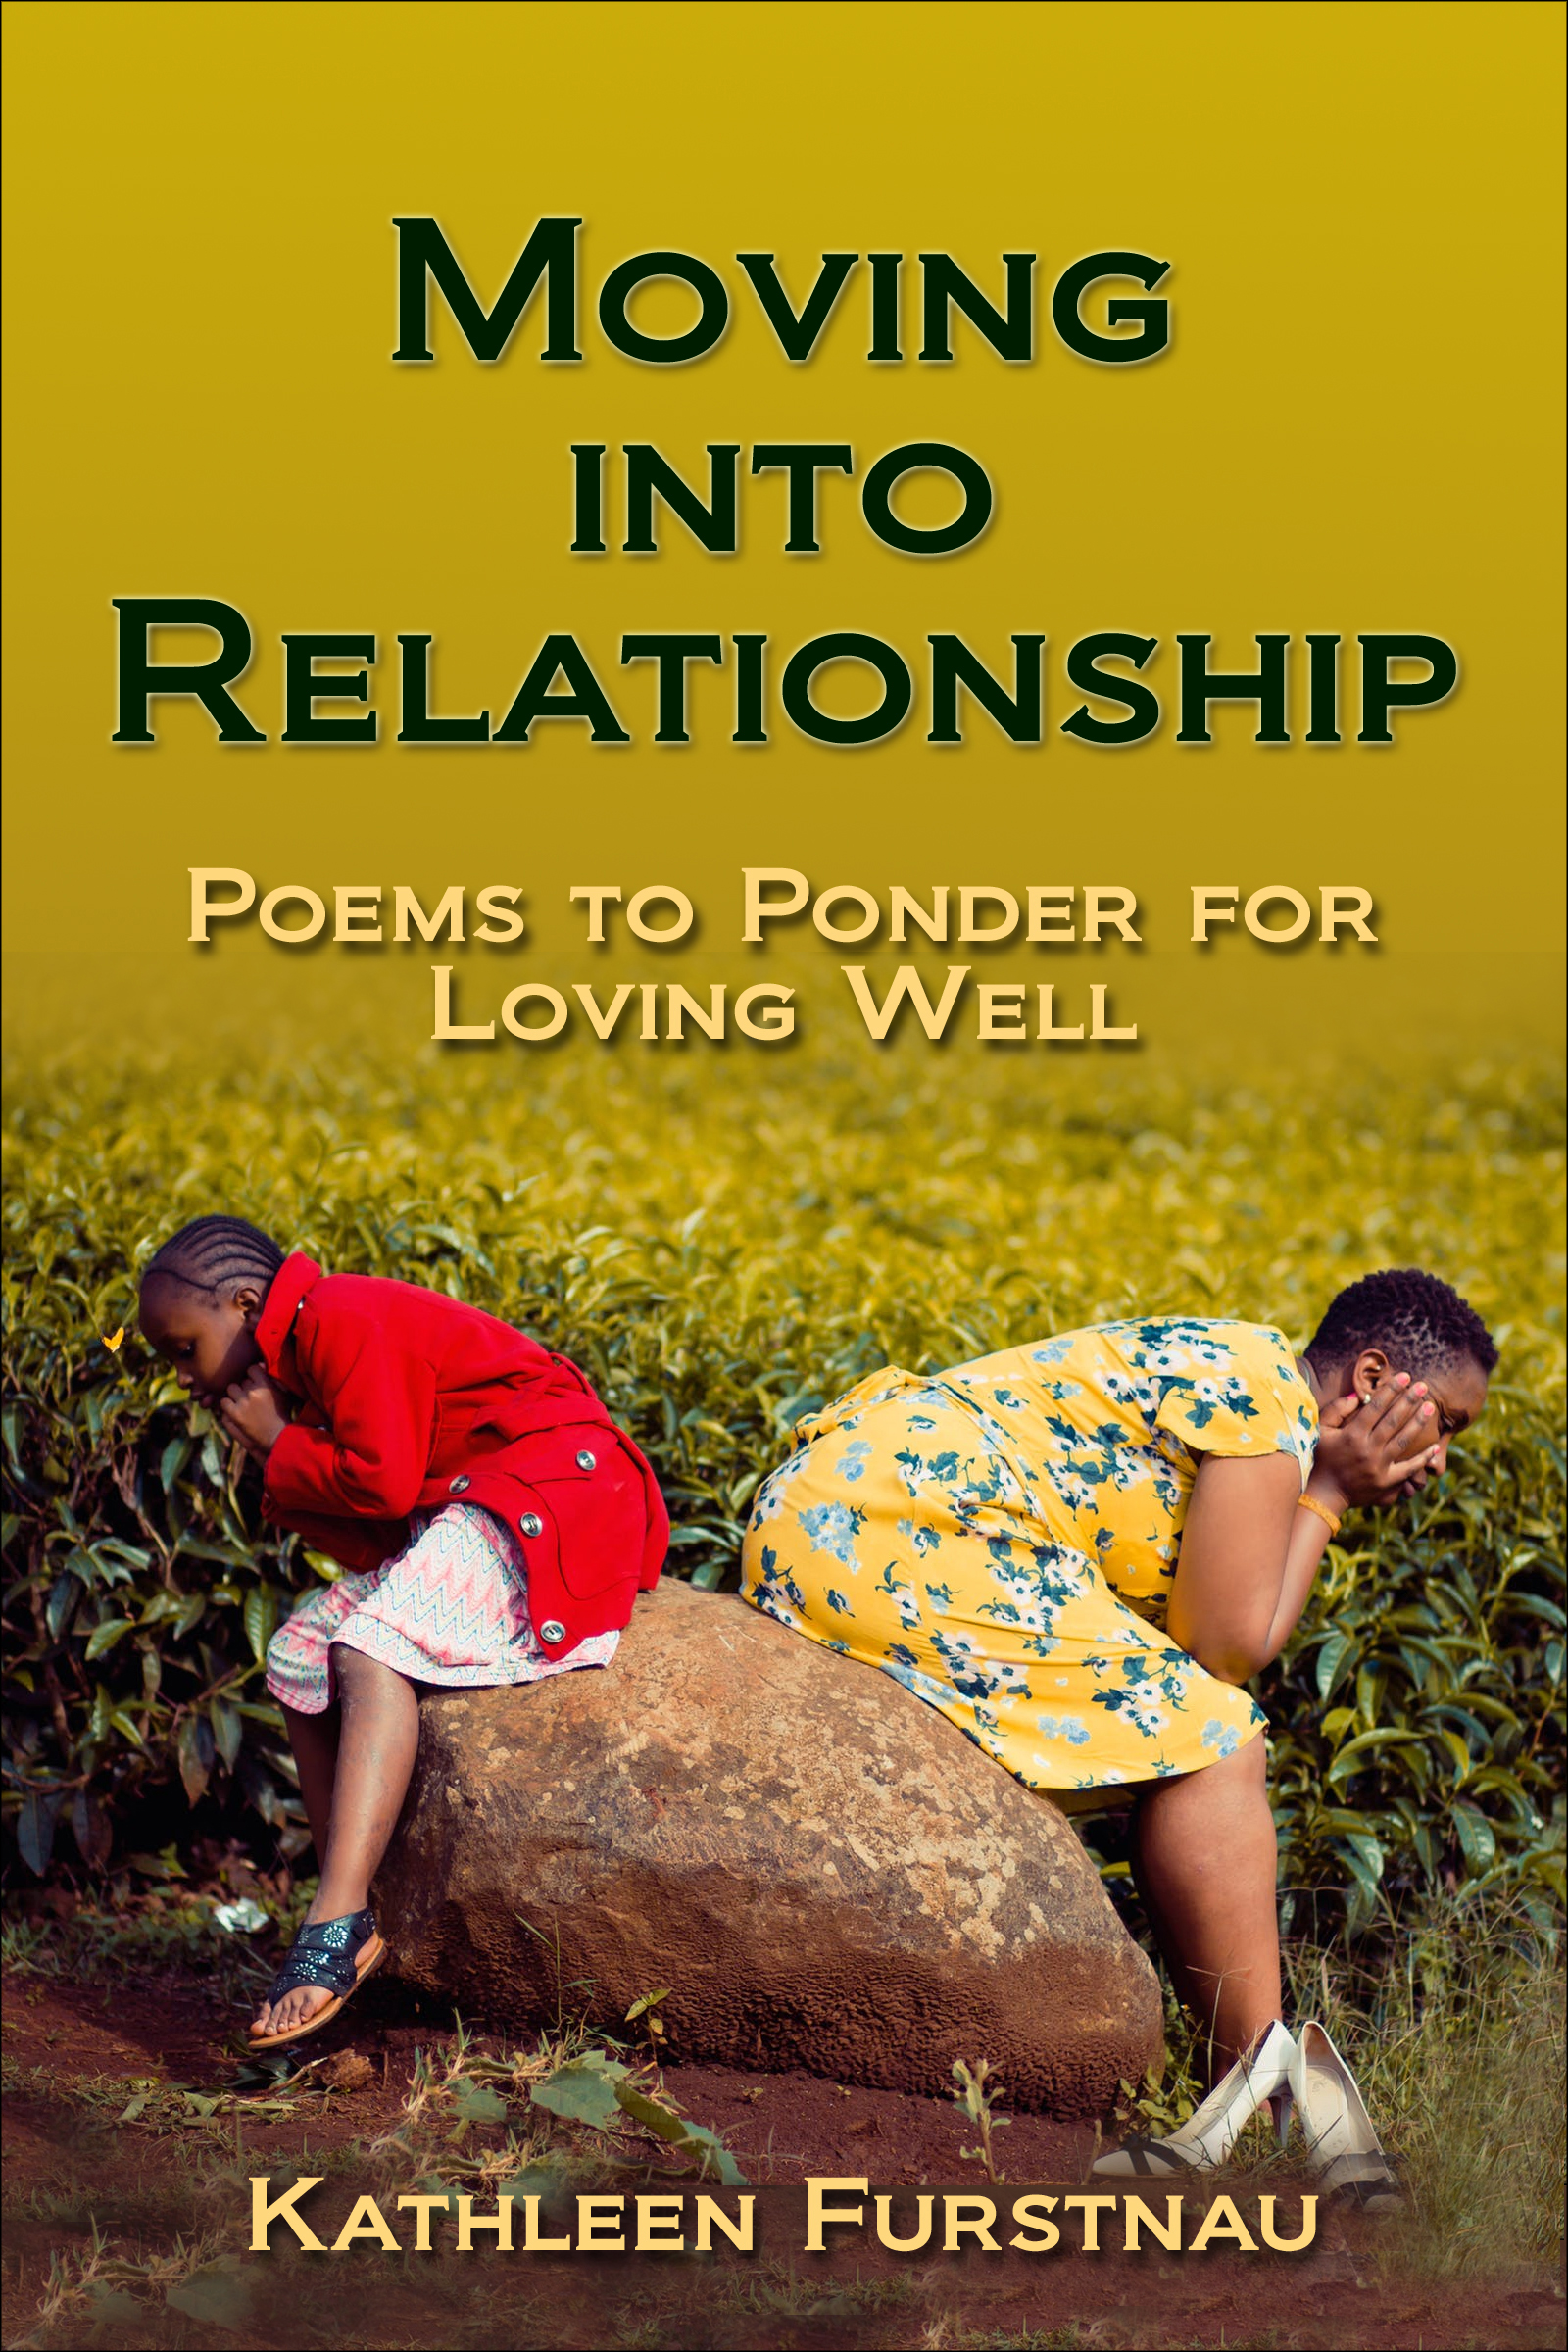 Moving Into Relationship: Poems to Ponder for Loving Well, an Ebook by  Kathleen Furstnau